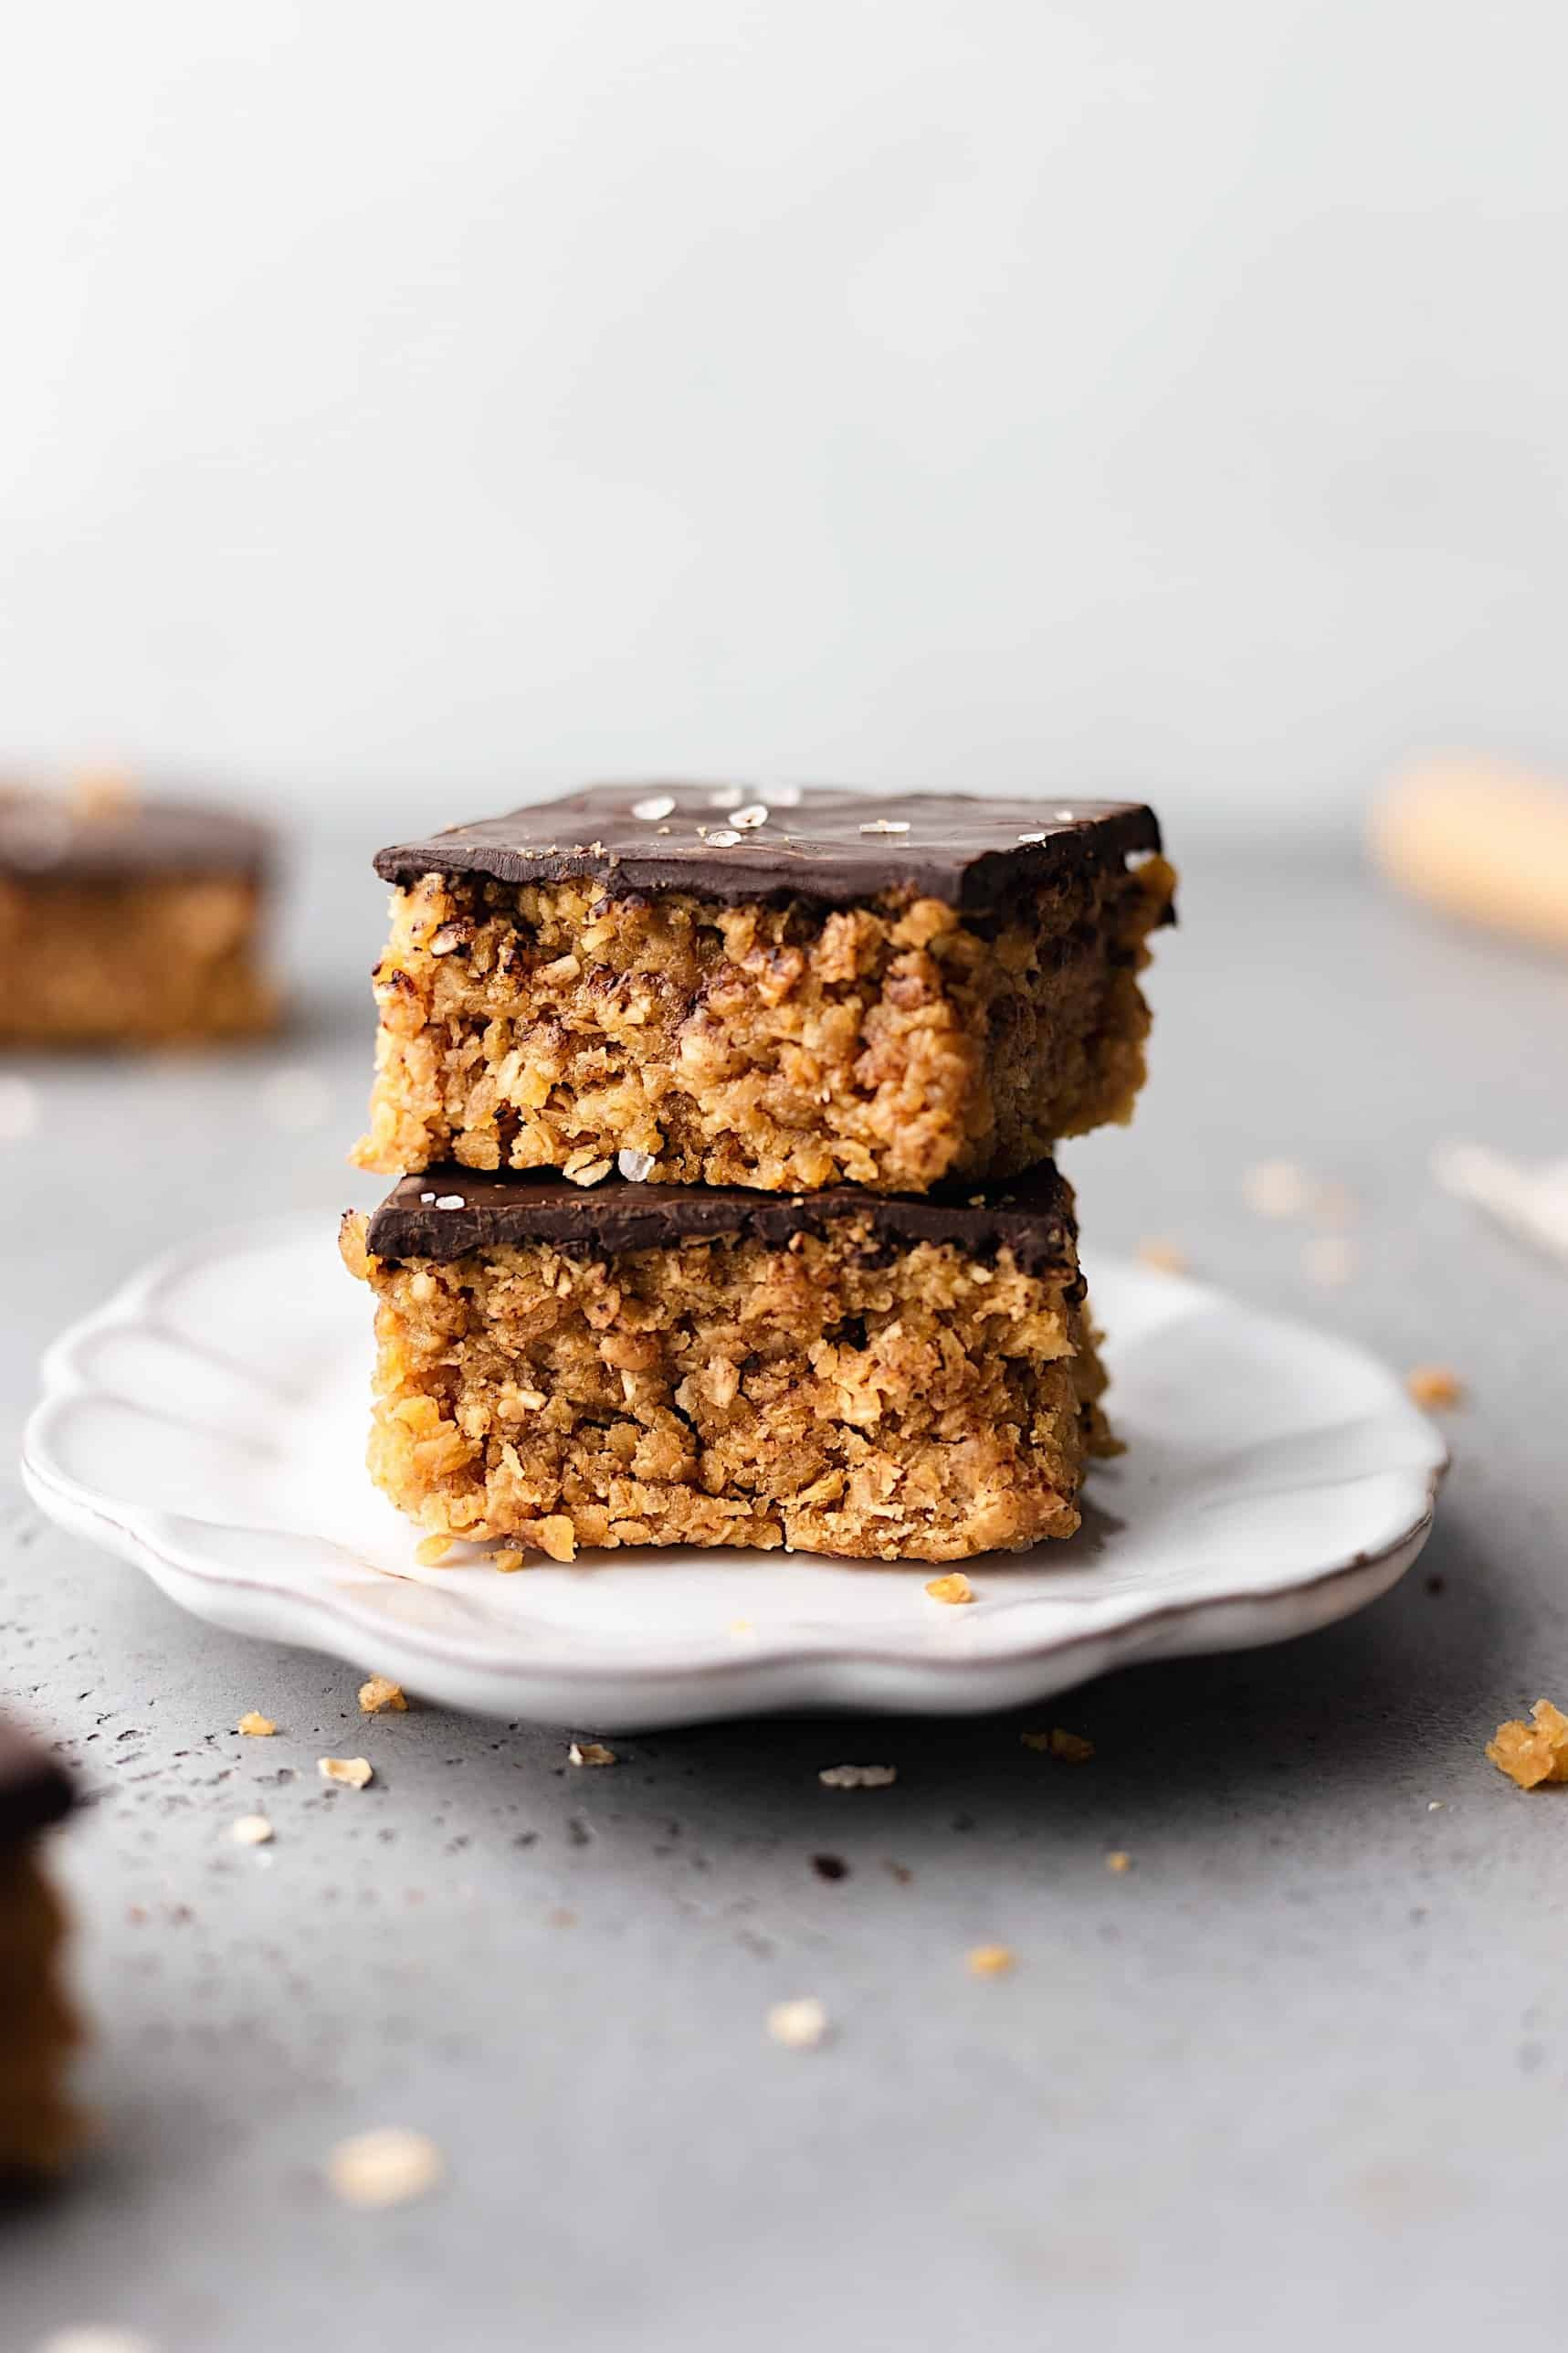 Yummy Golden Syrup Flapjacks Recipe Bbc Good Food Recipes Flapjack Recipe Golden Syrup Flapjacks